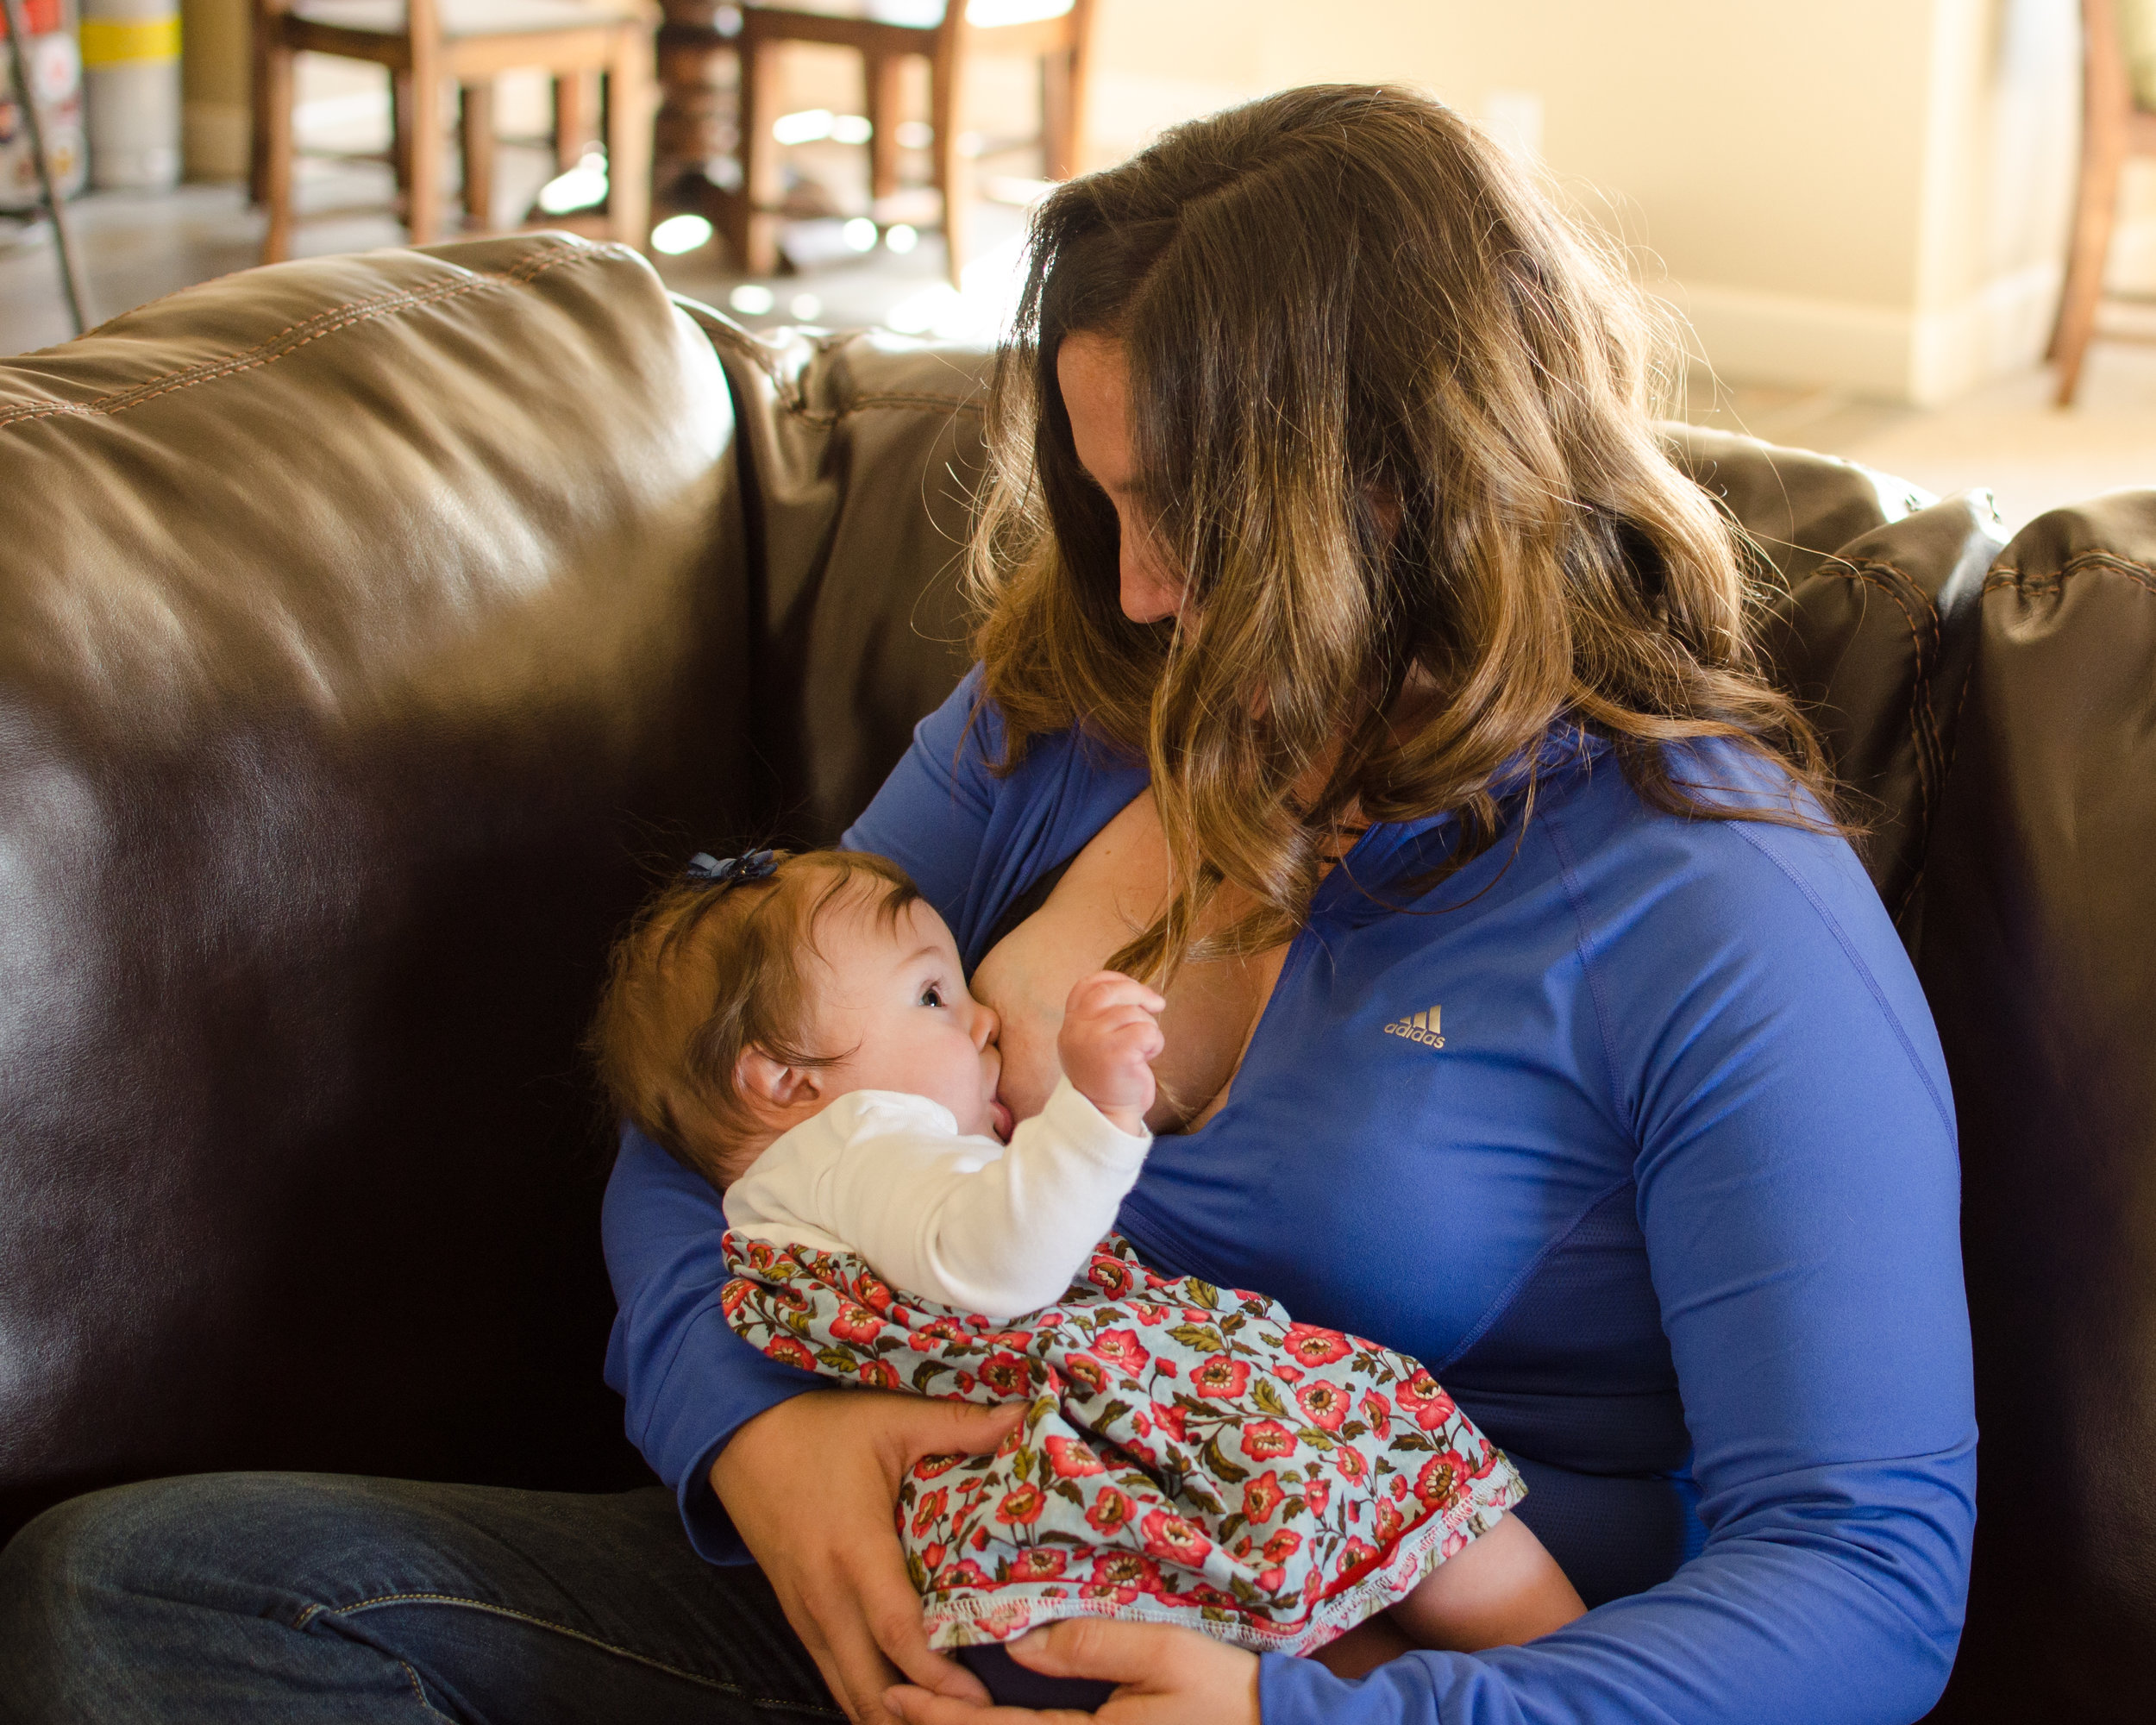 Breastfeeding at home, struggle, lifestyle